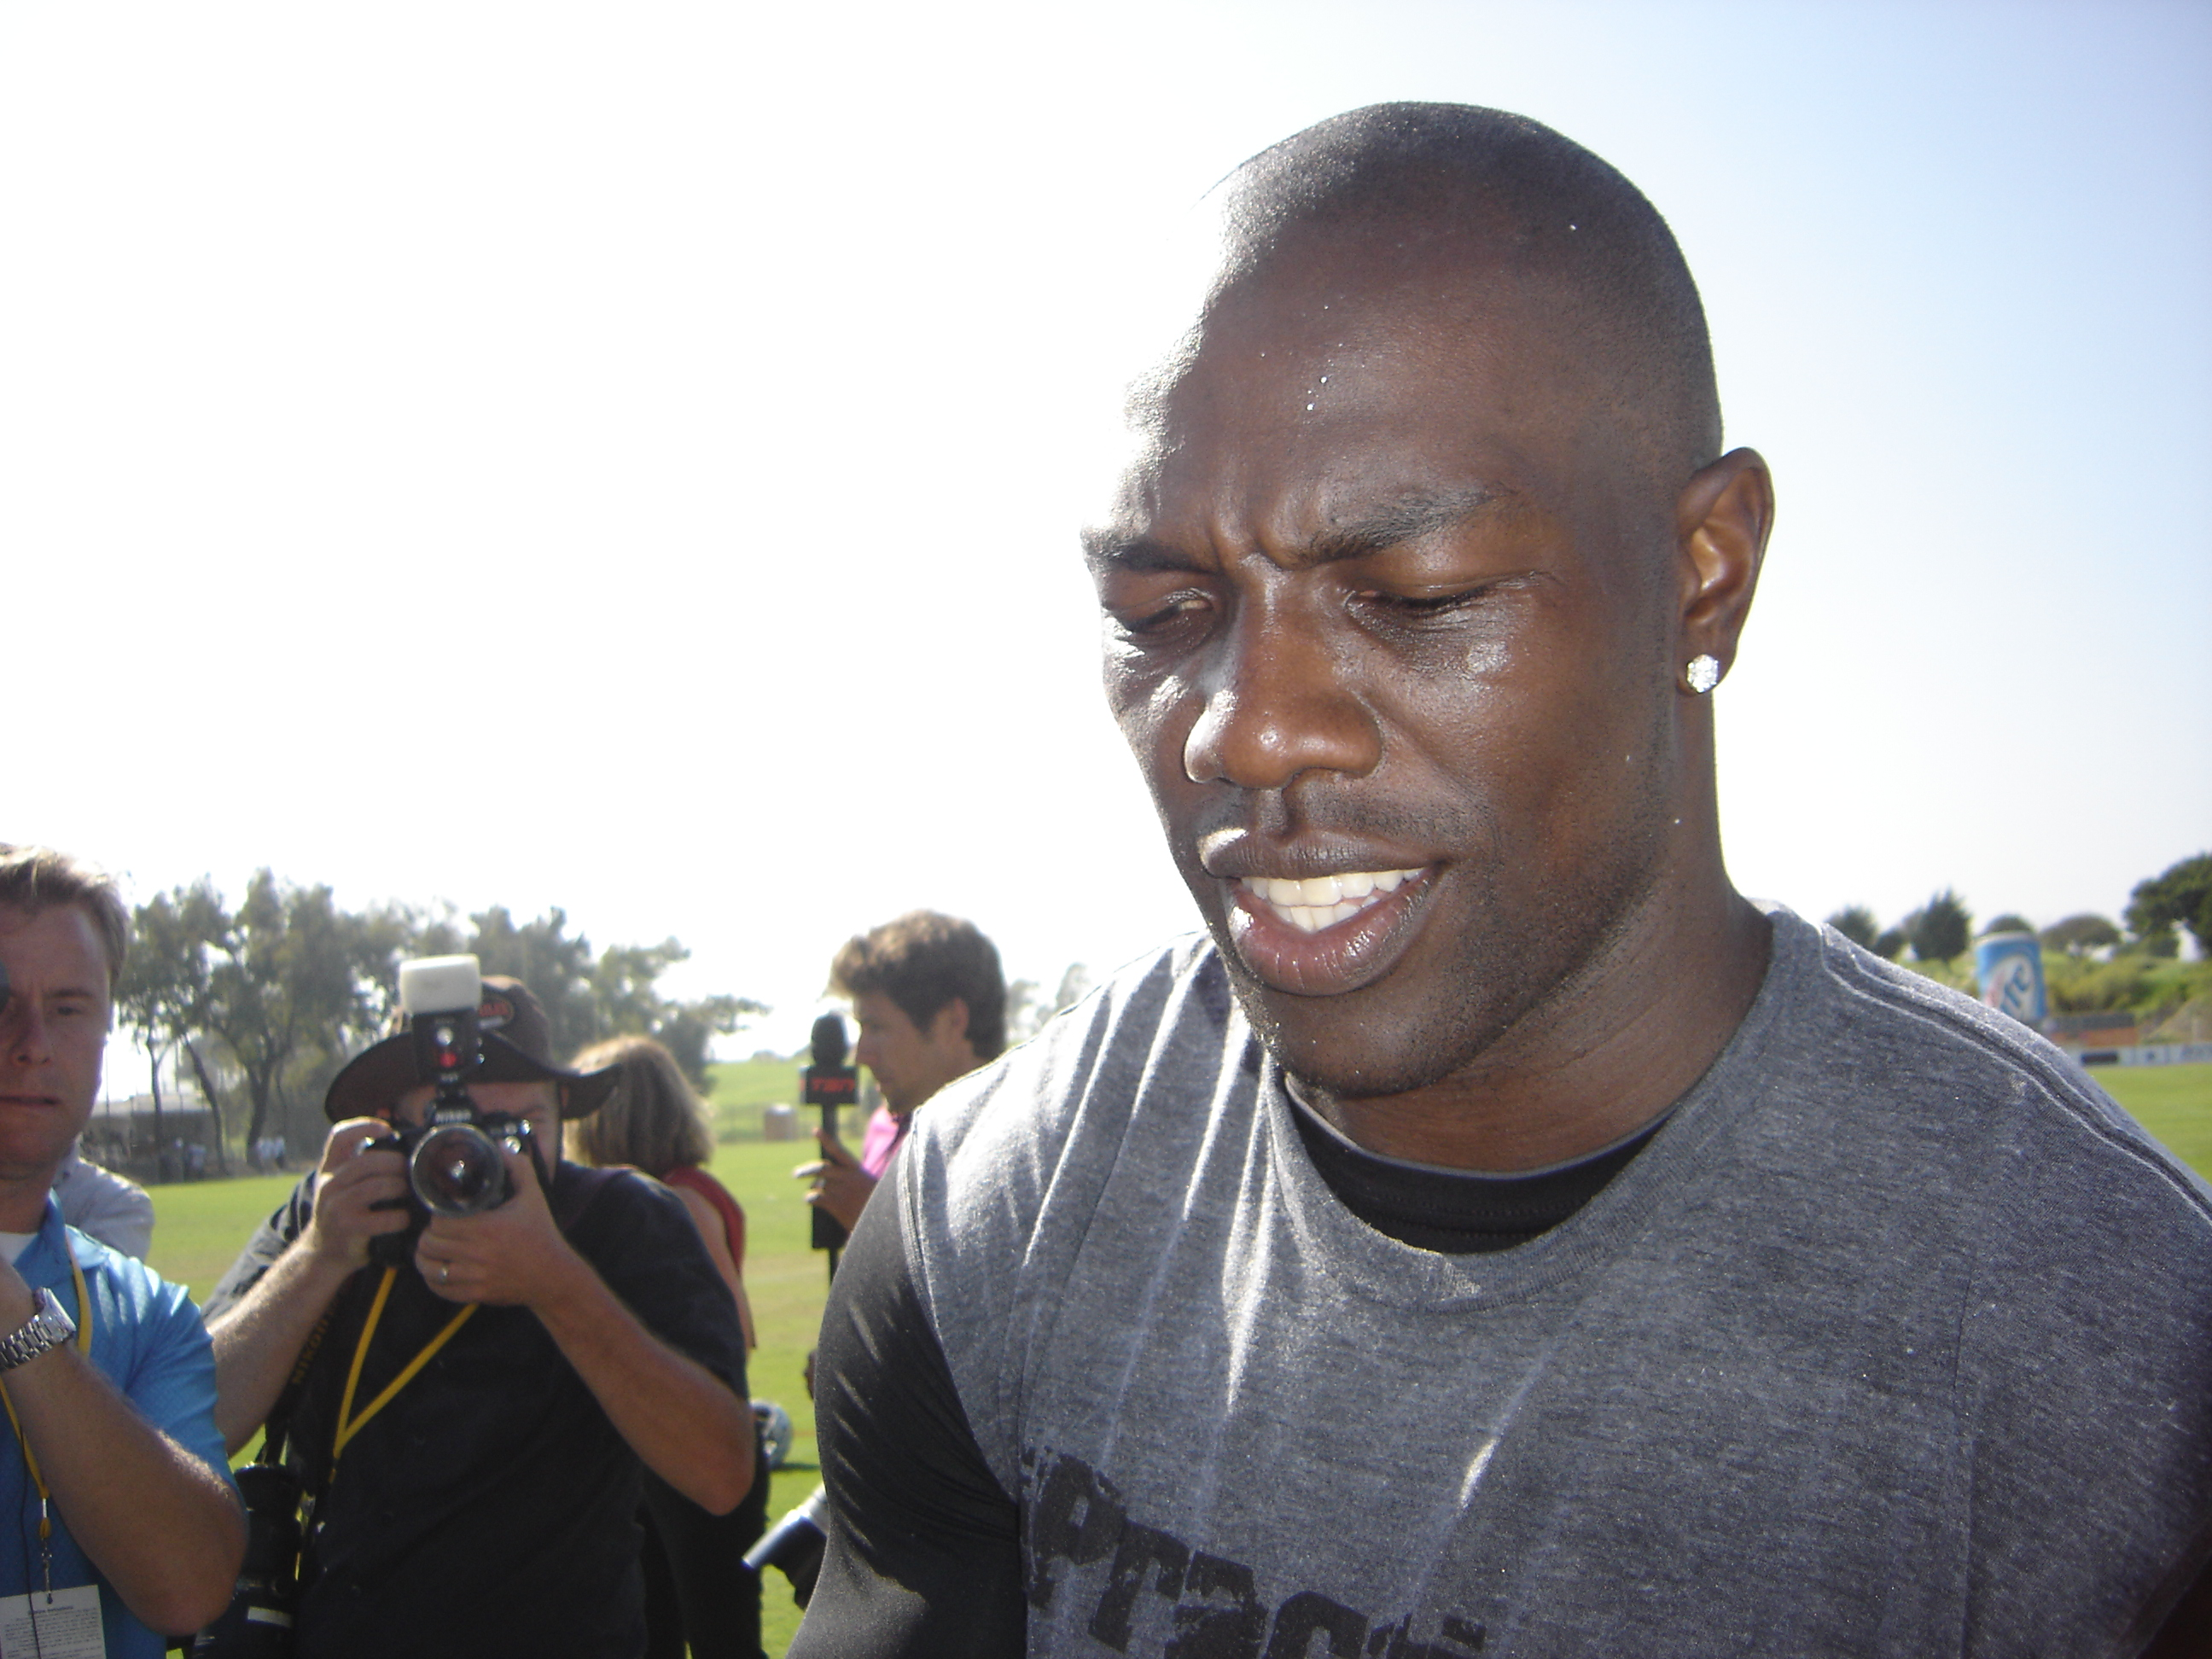 TERRELL OWENS IS NBA ASG CELEBRITY MVP! | k1x.com